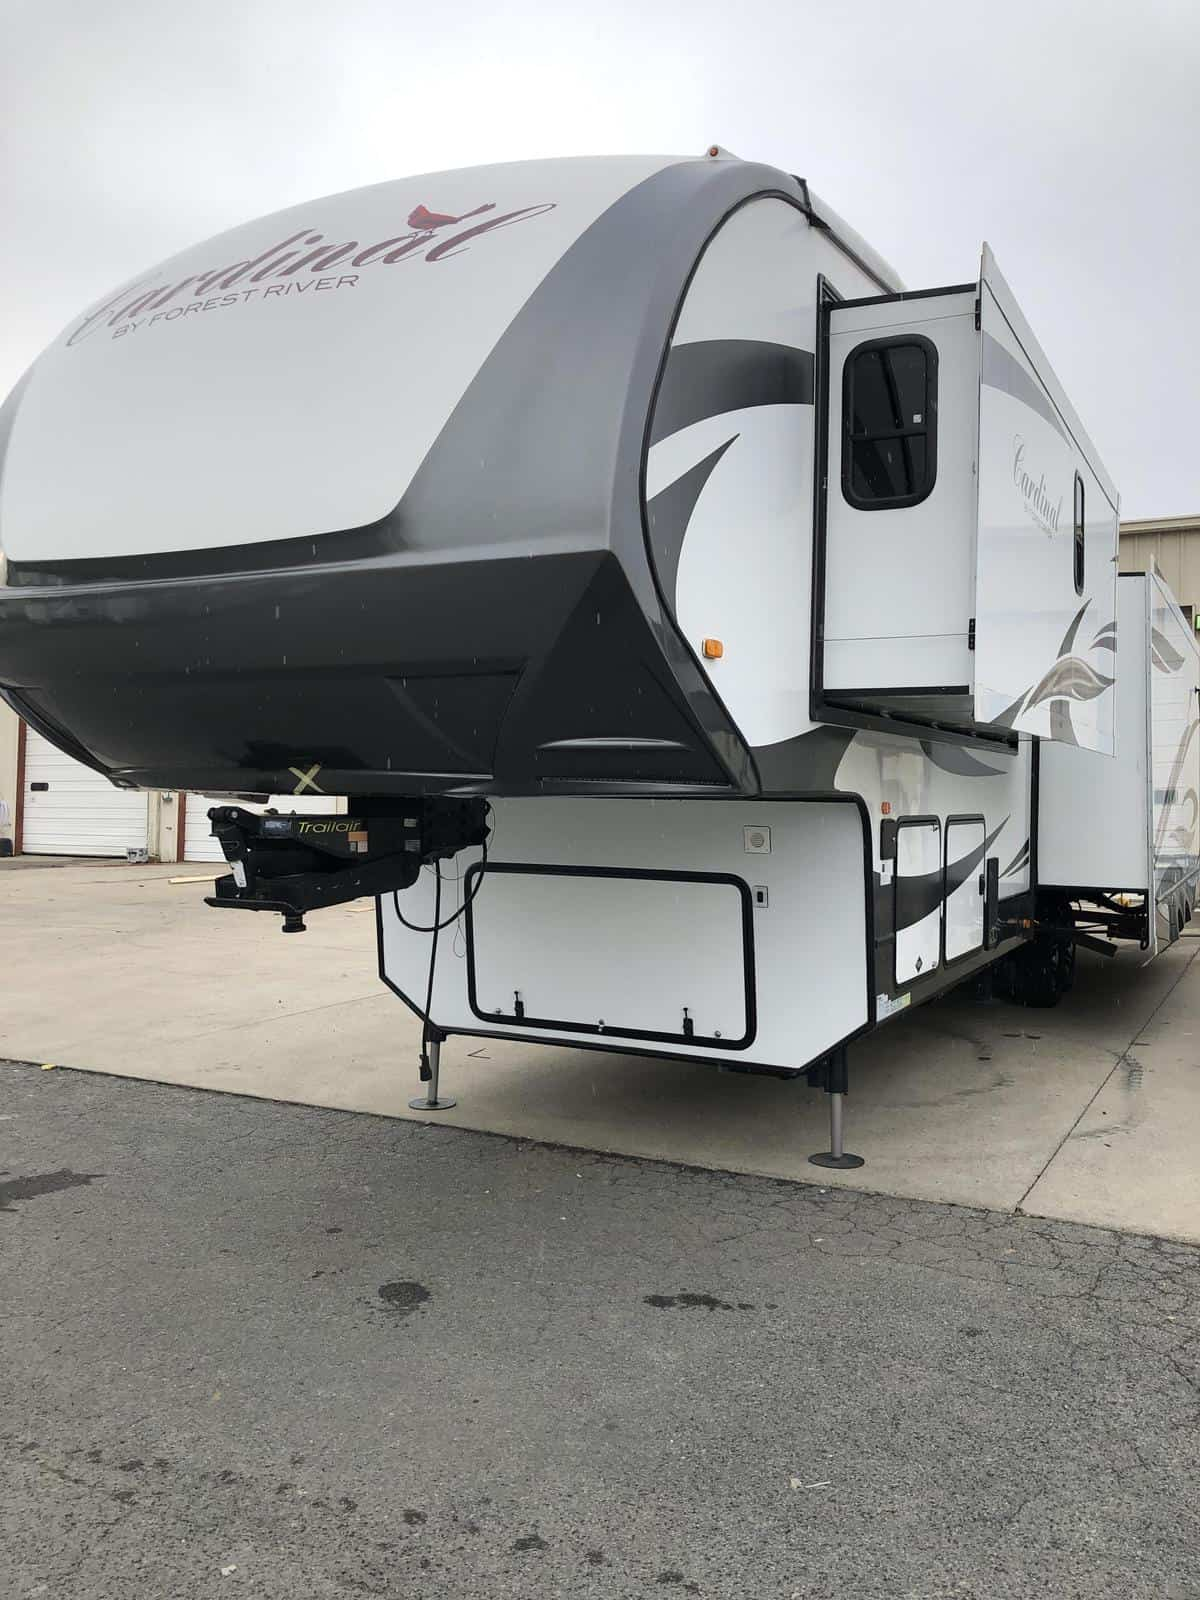 USED 2014 Cardinal 3850 3850 - Three Way Campers